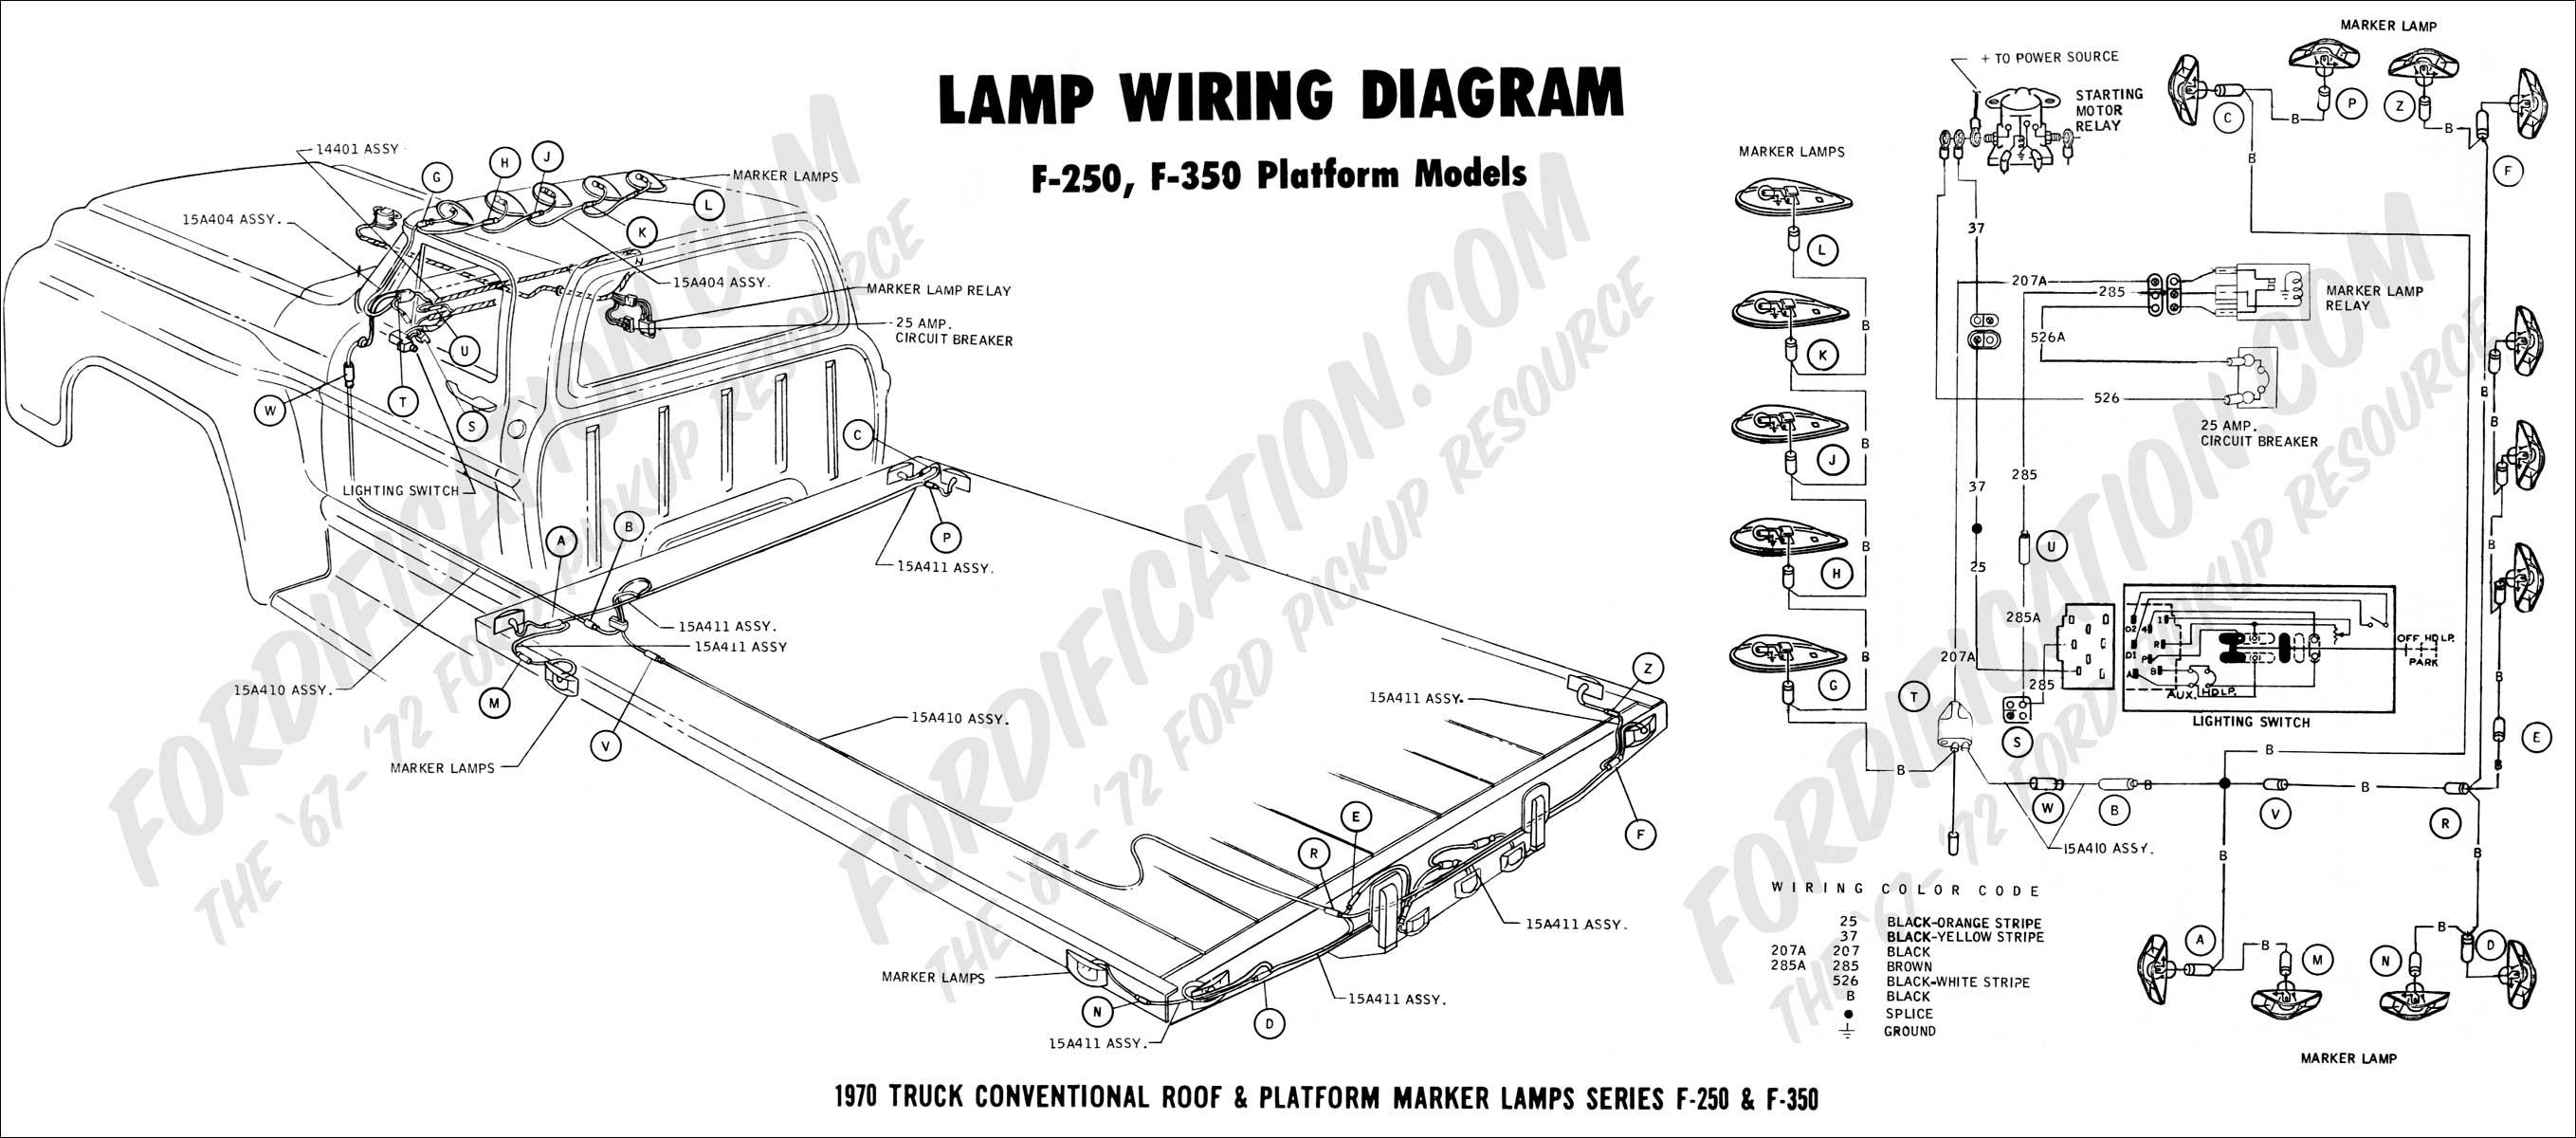 86 ford taurus wiring diagram picture